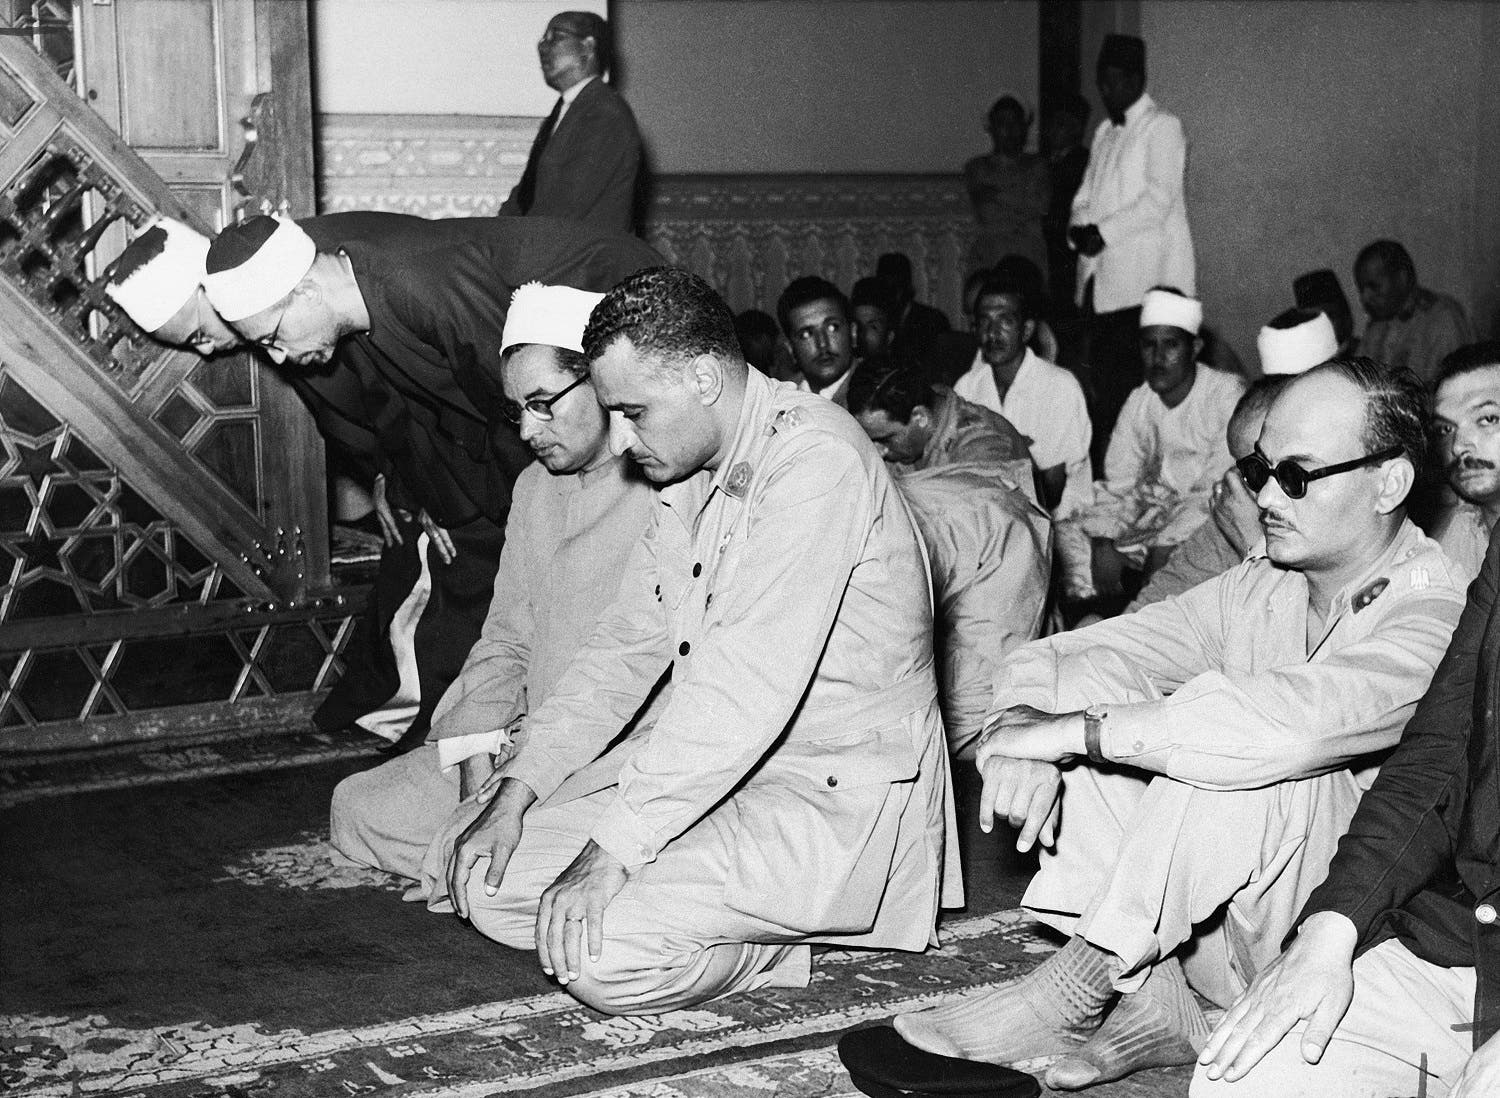 Egyptian Prime Minister Lt. Col. Gamal Abdel Nasser prays at a Cairo mosque with the Minister of National Guidance, Maj. Salah Salem, right, in sunglasses, in 1954. (AP)